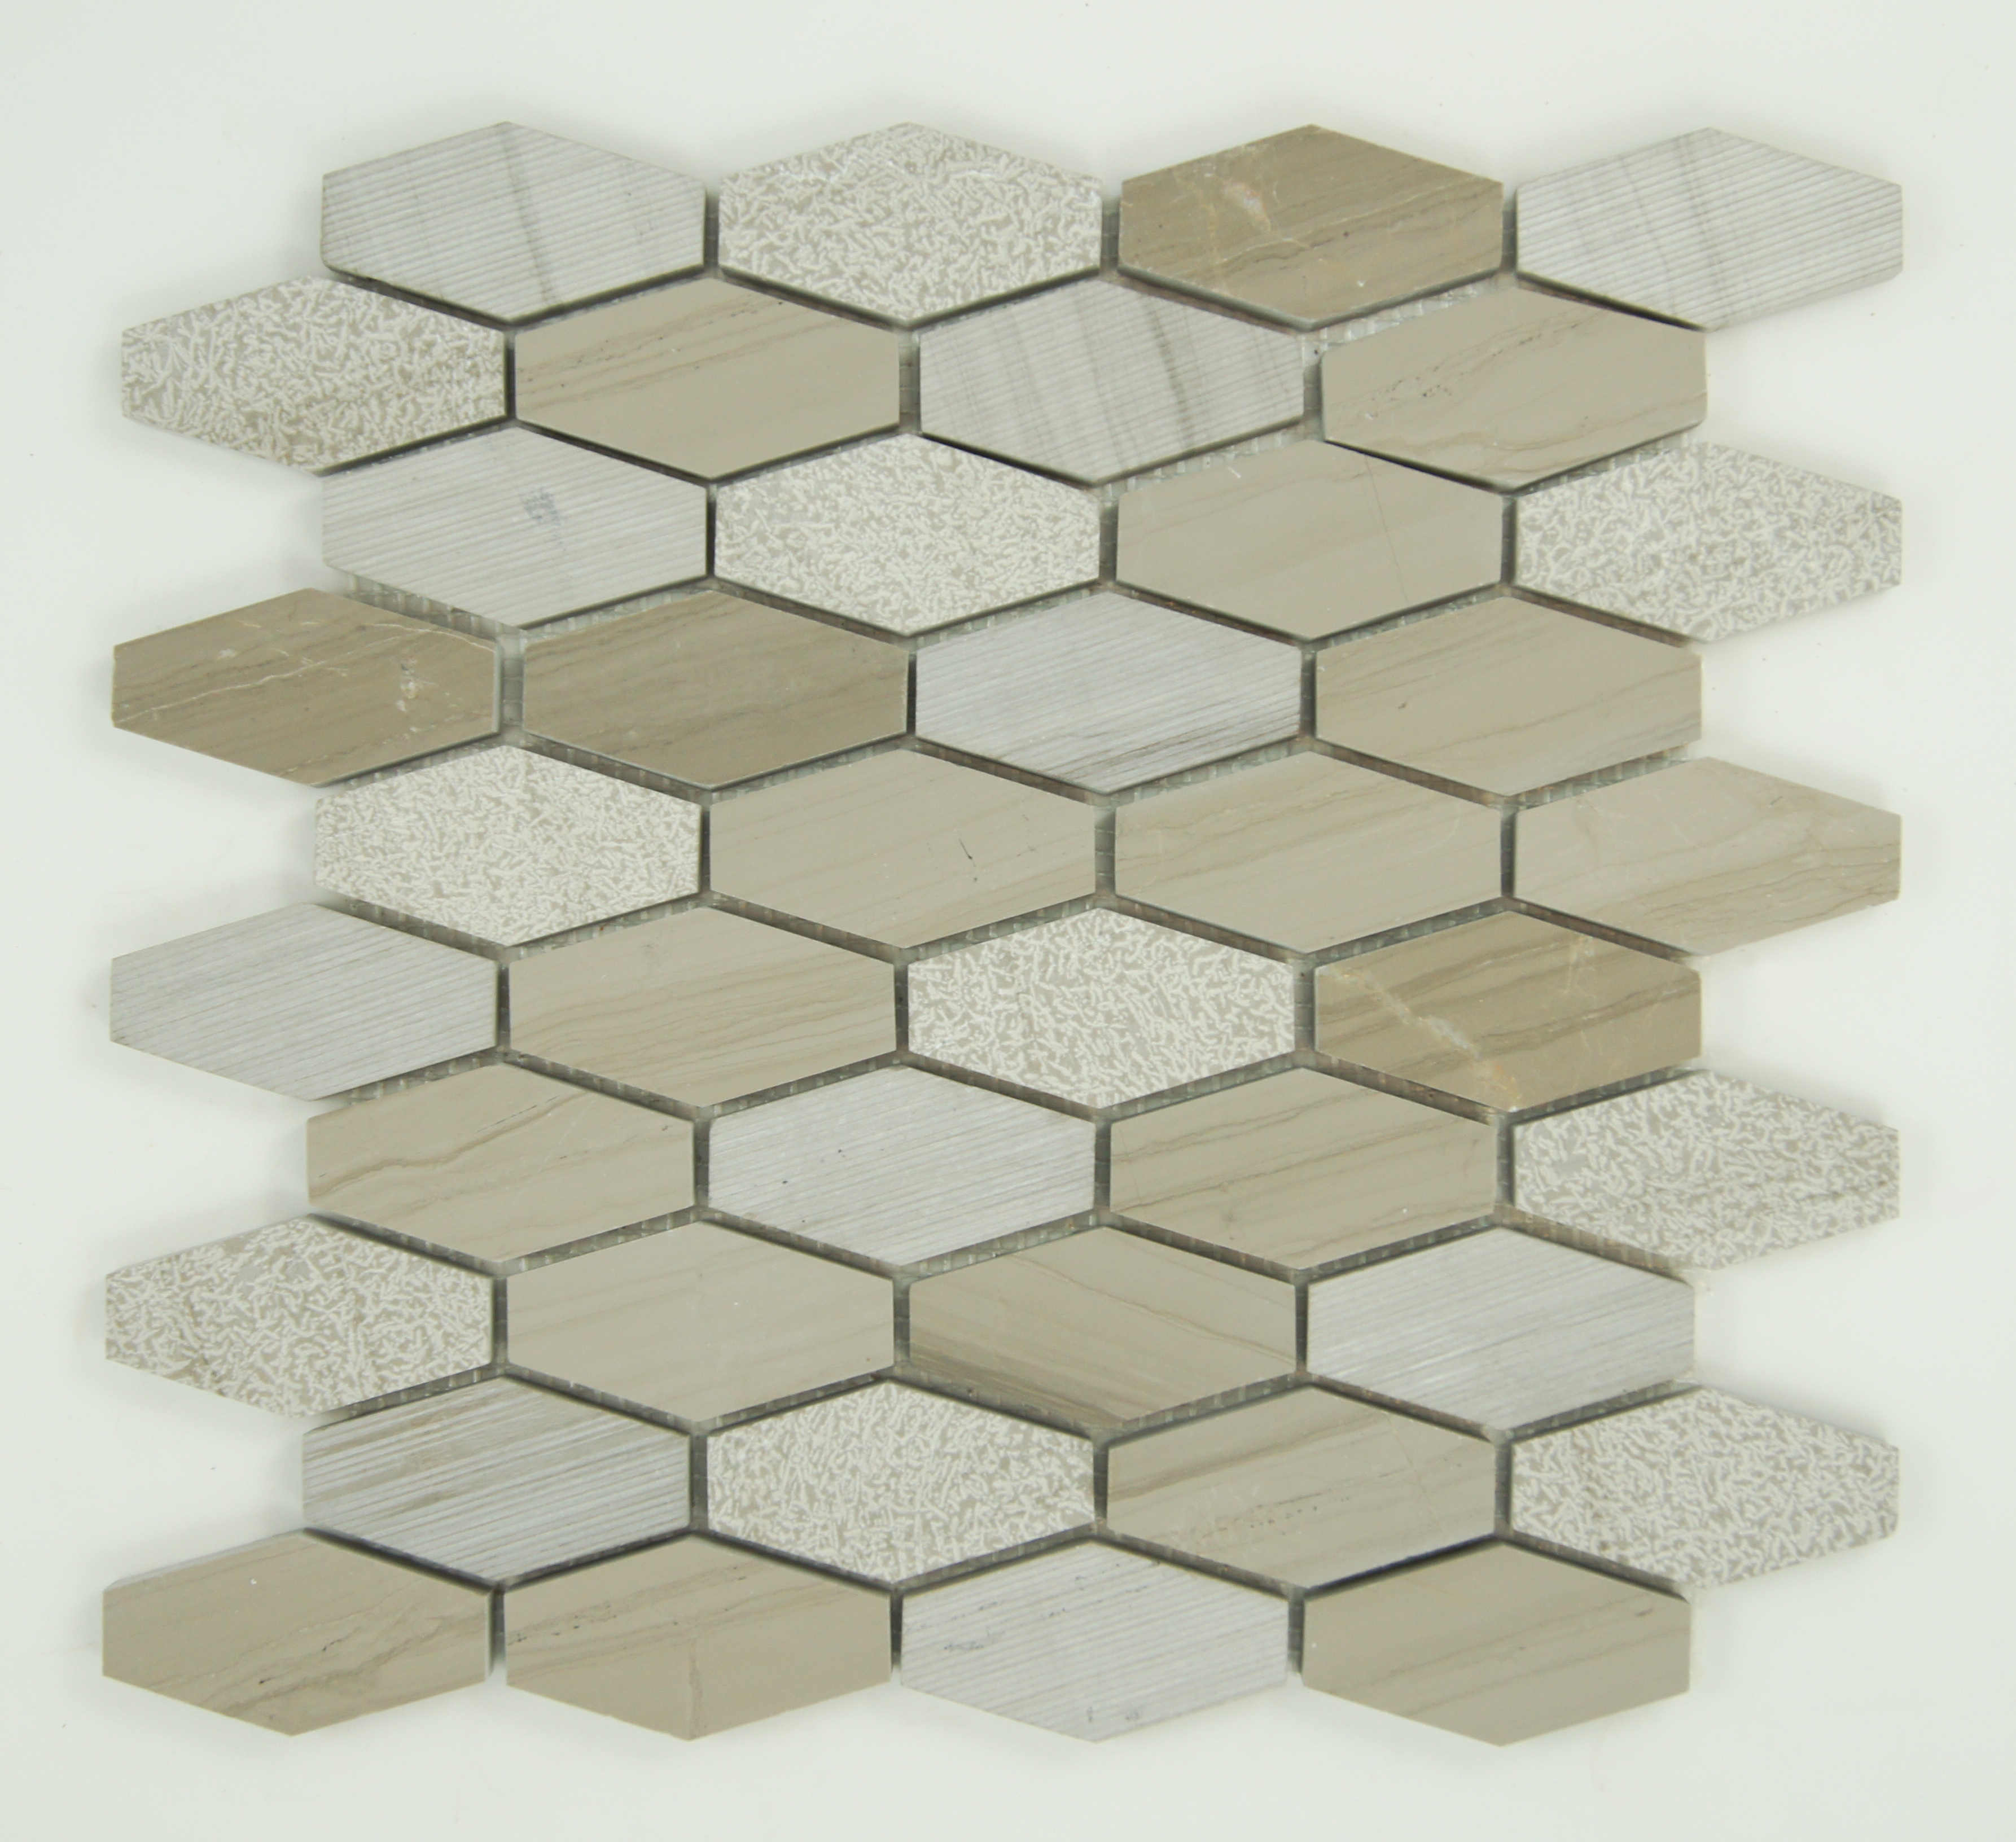 Porcini Textured Elongated Hexagon